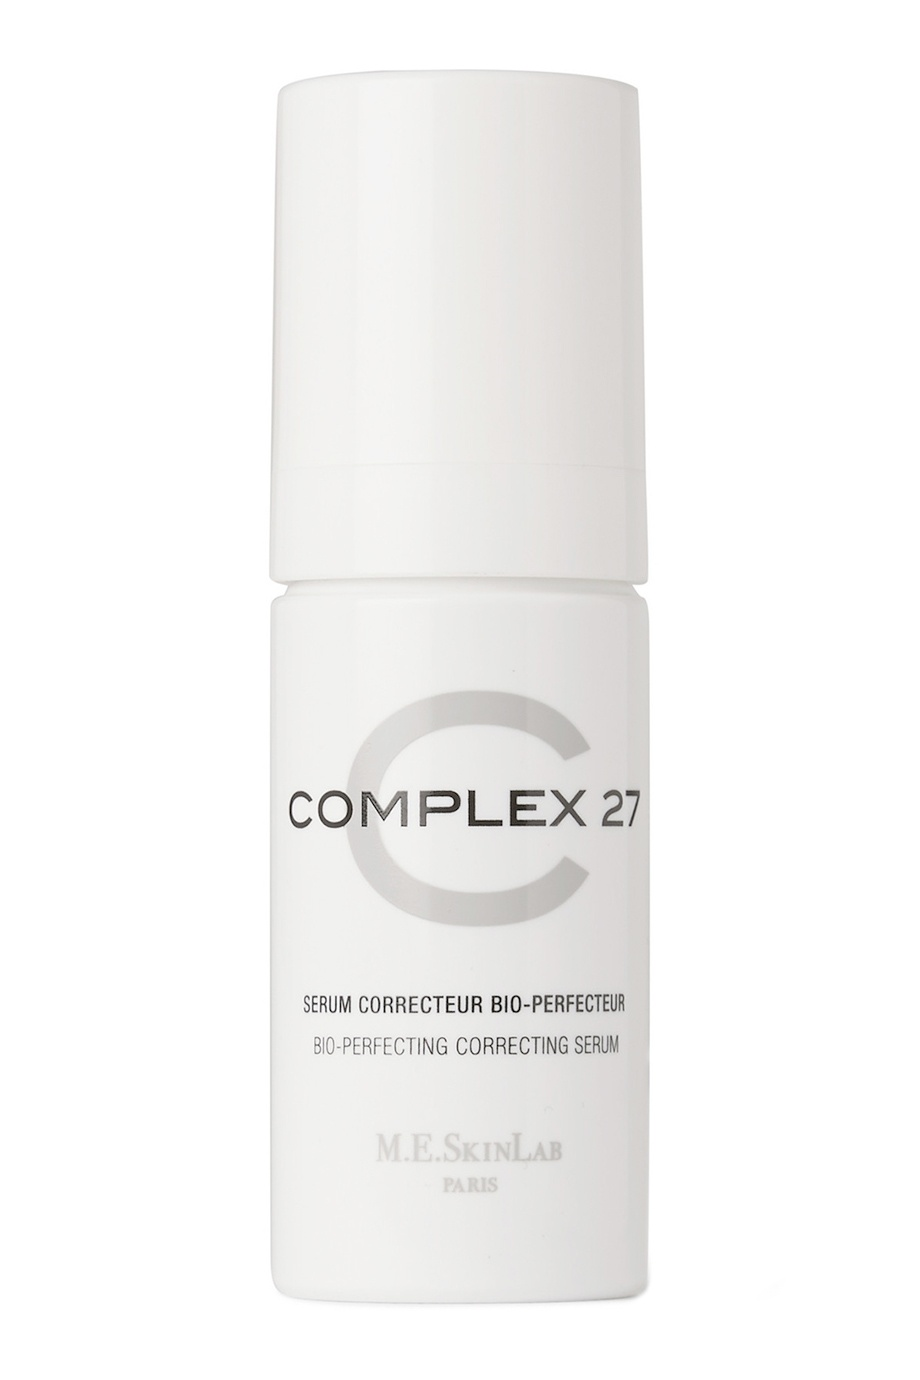 Сыворотка для лица Complex 27 C Bio-Perfecting Correcting 30ml Cosmetics 27 (фото)